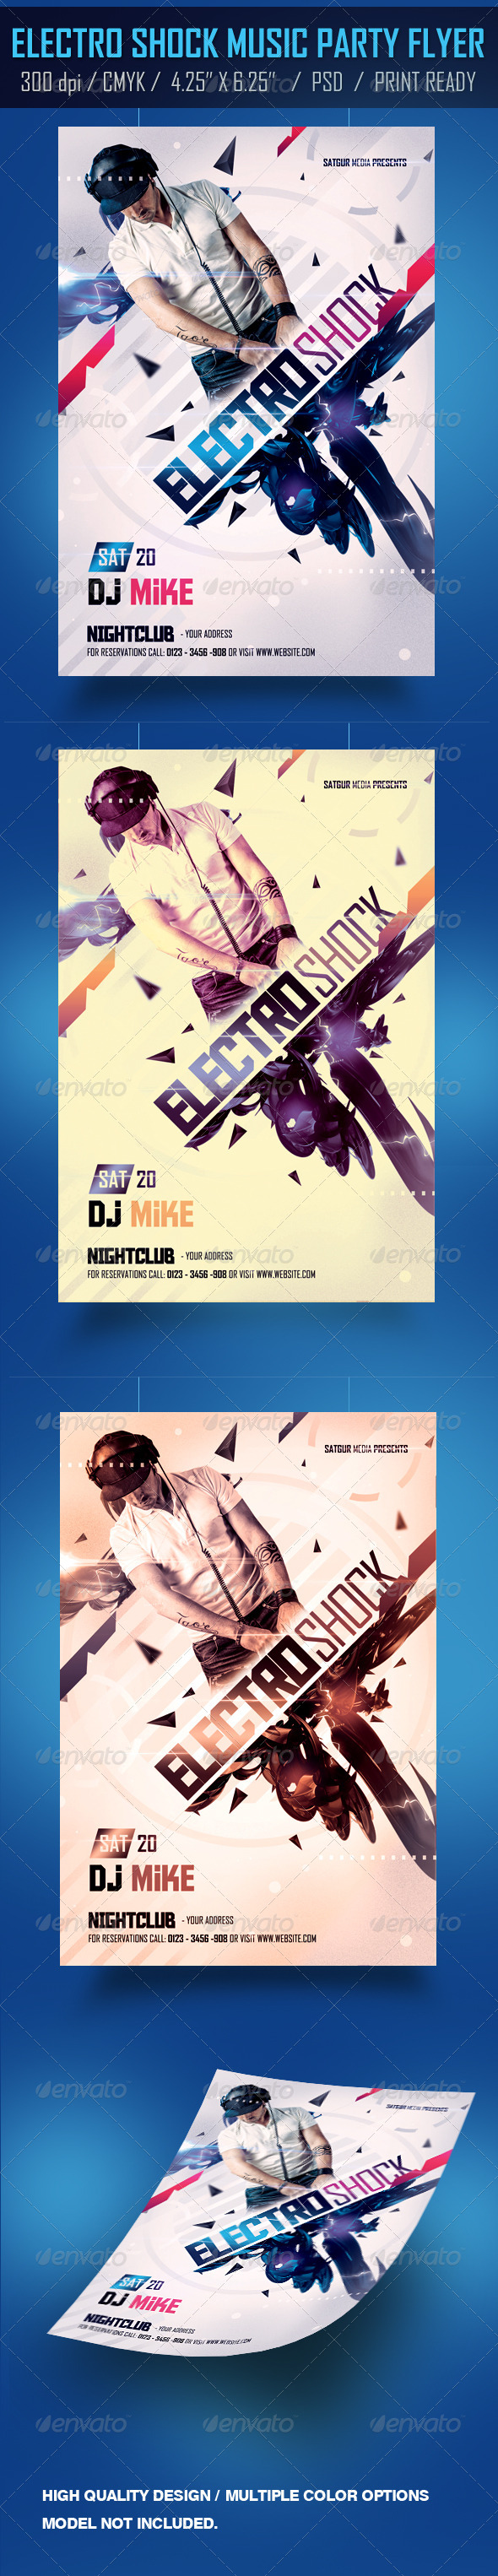 GraphicRiver Electro Shock Music Party Flyer 4180797